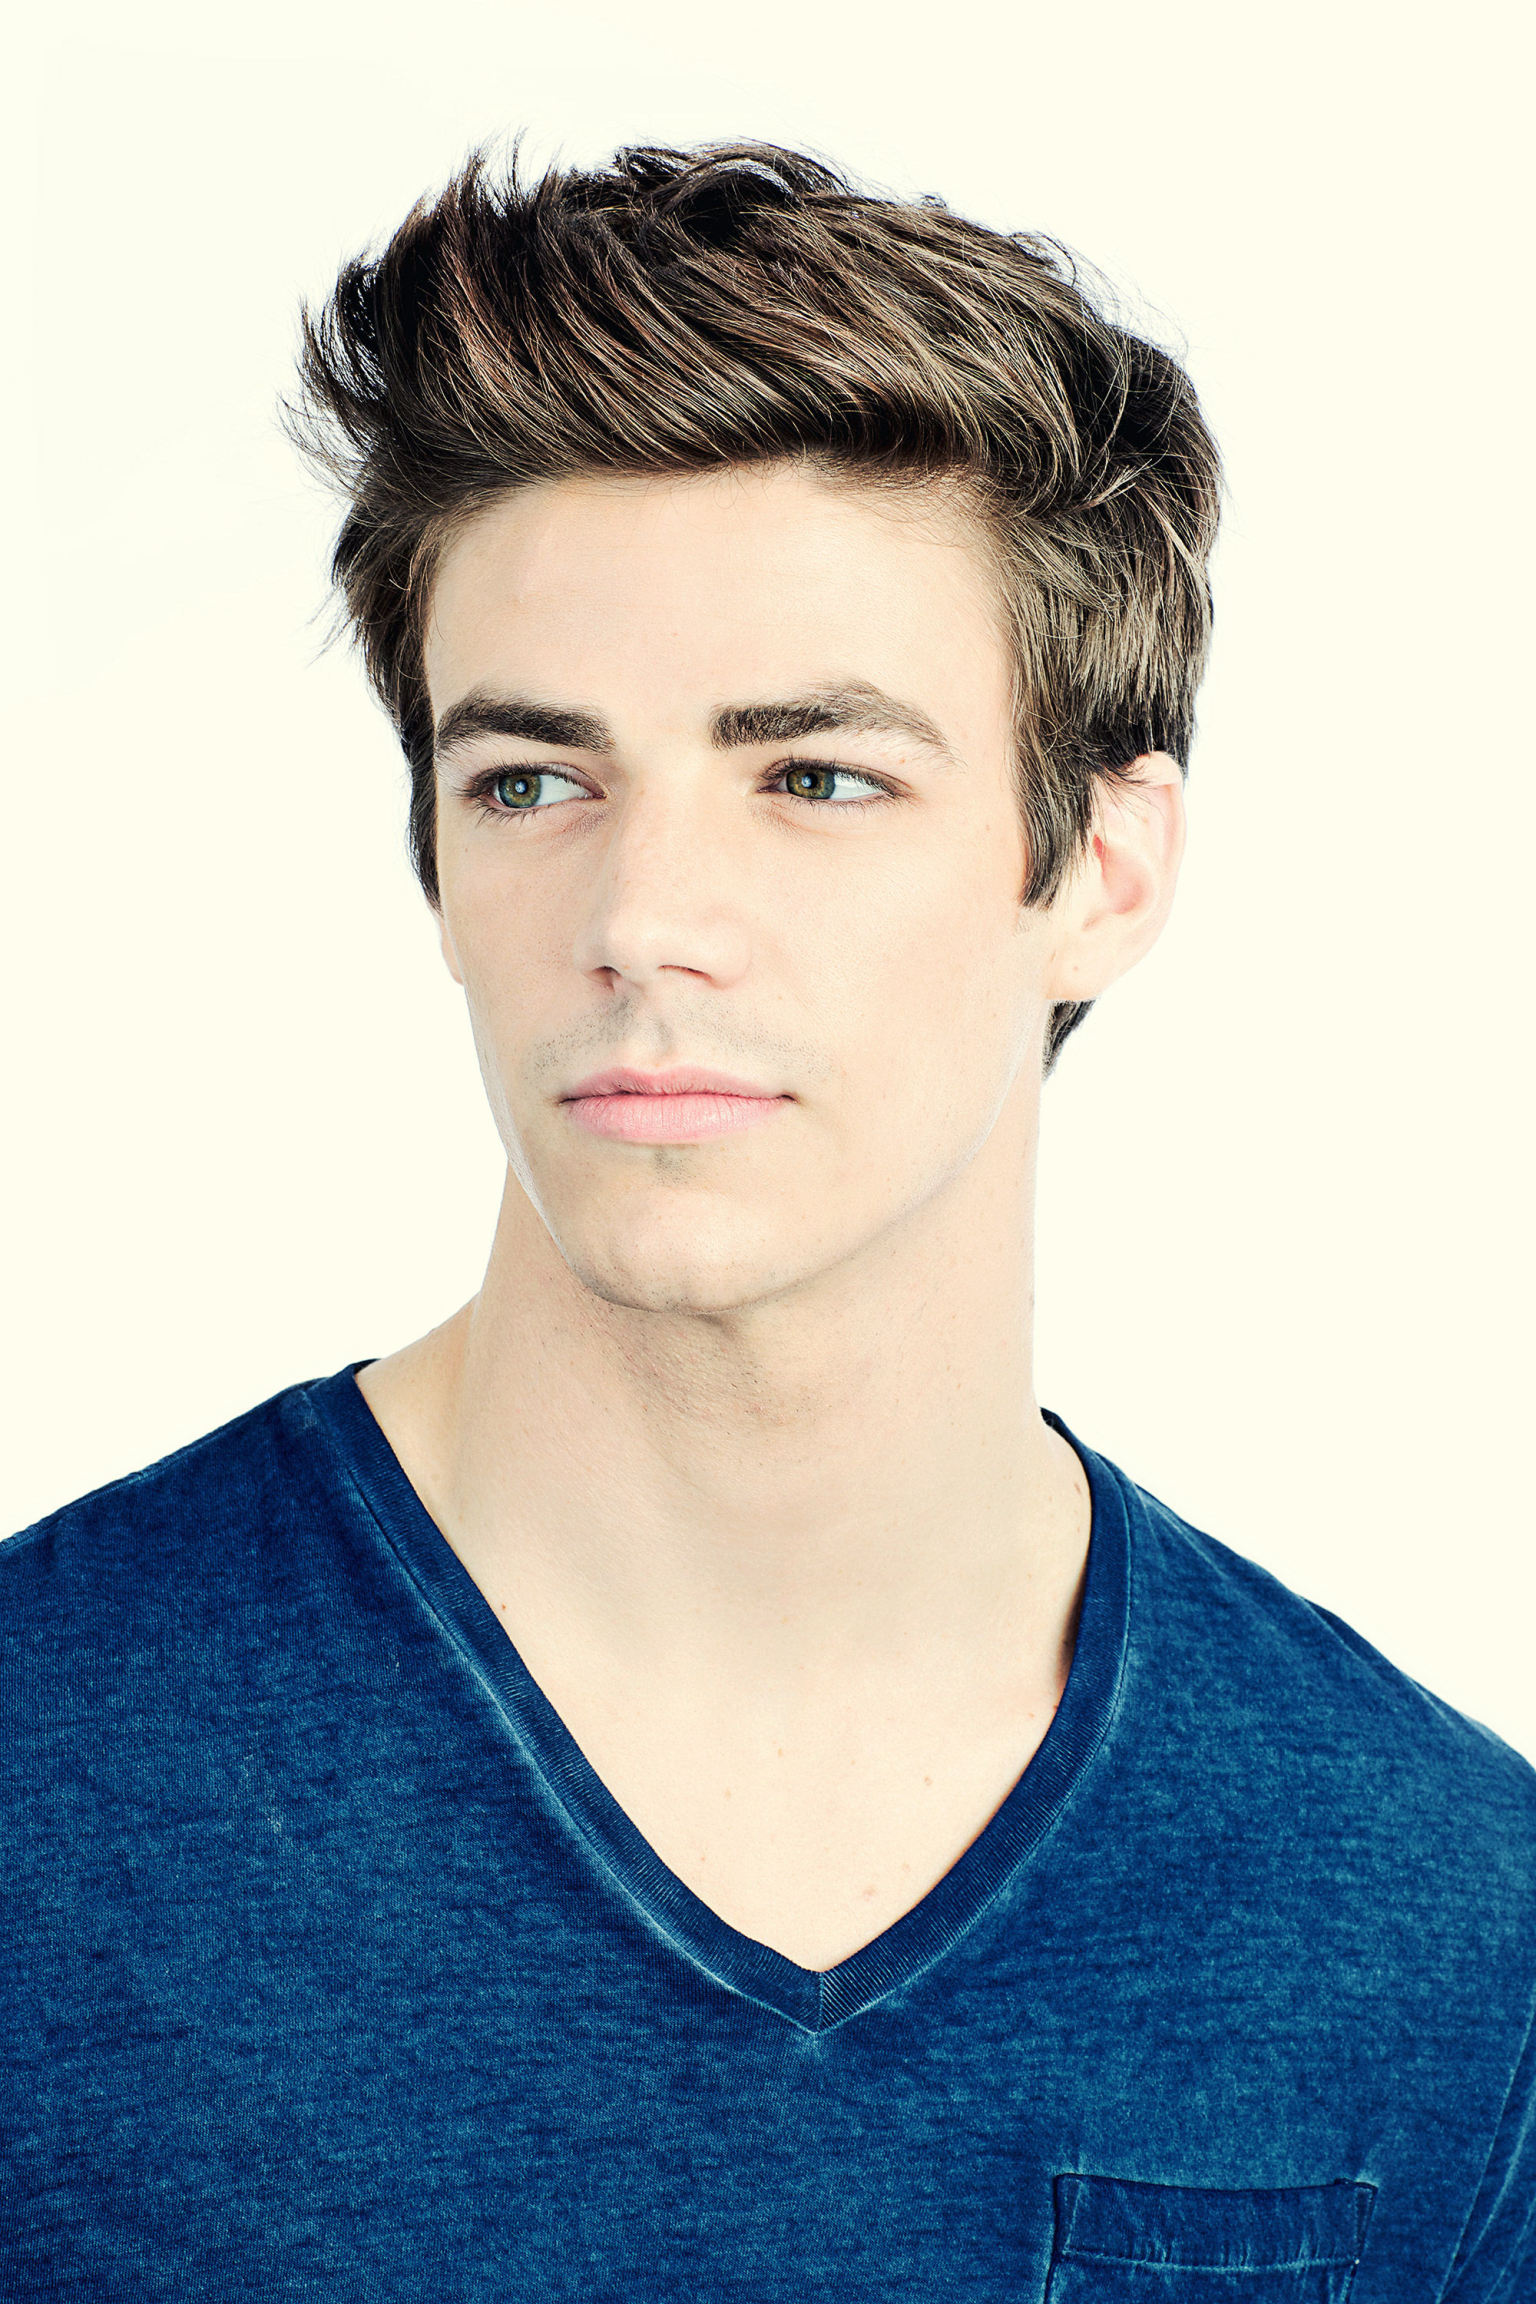 The Flash Grant Gustin Cast As Barry Allen For Arrow